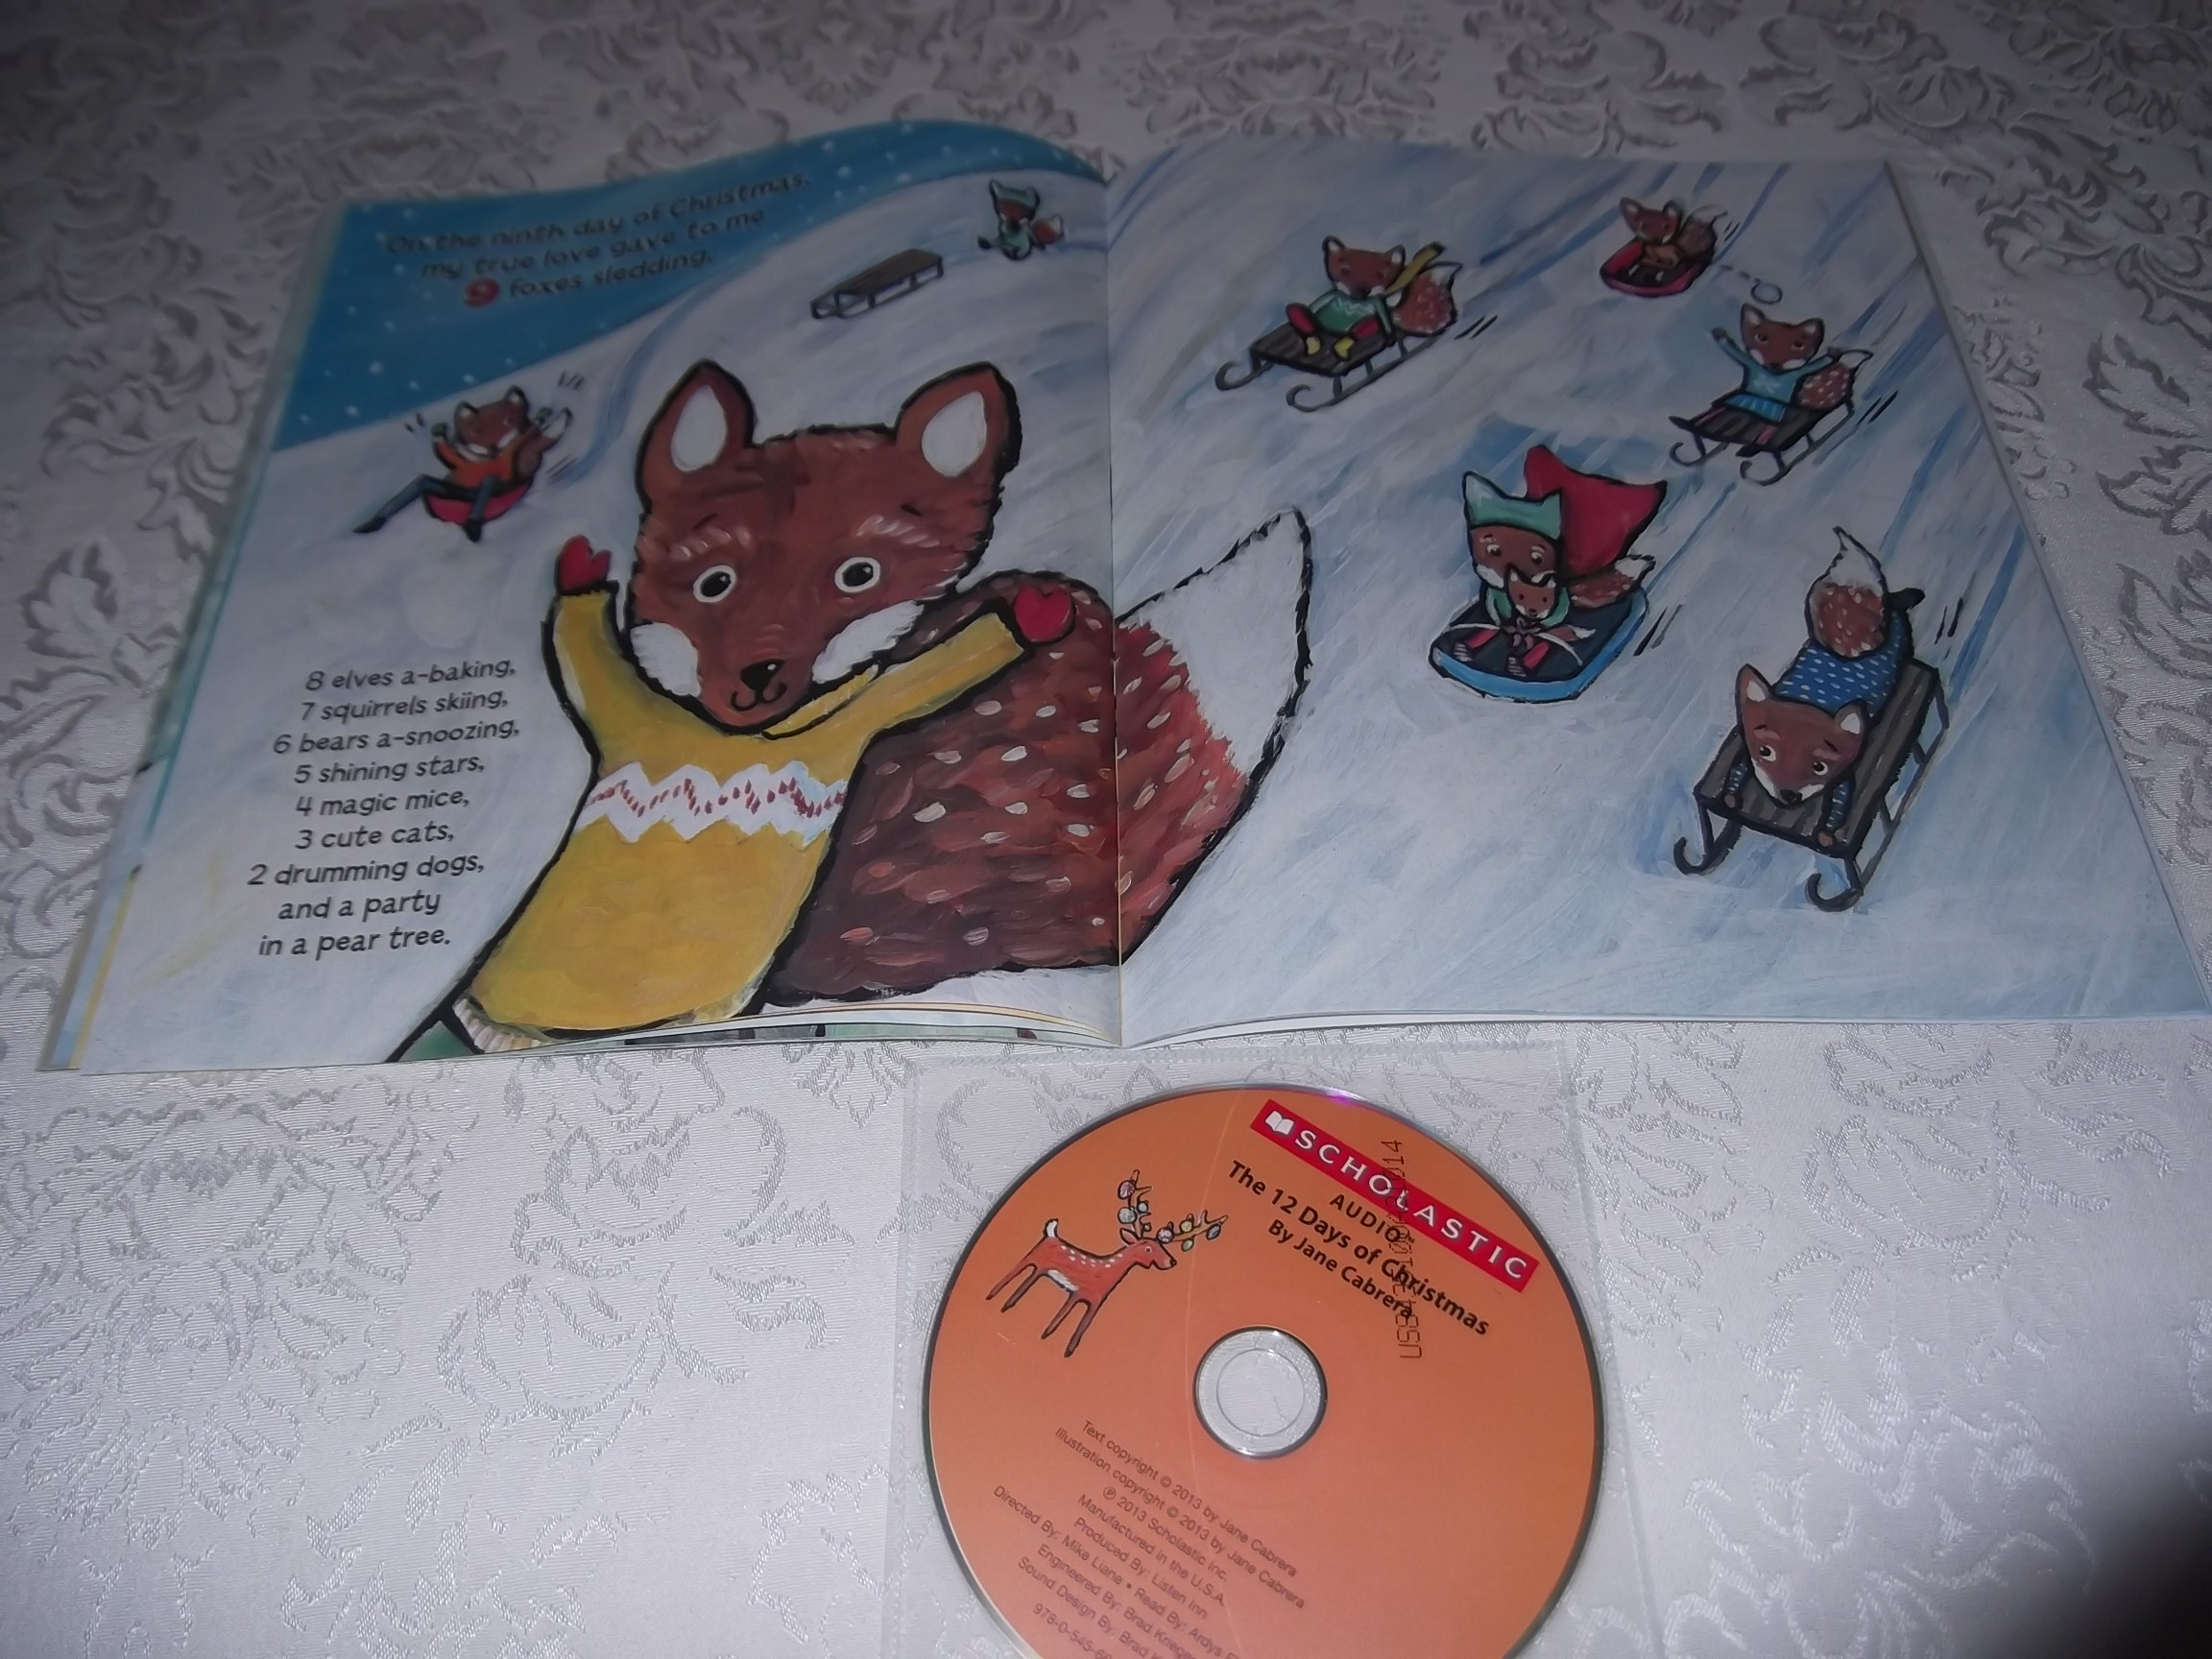 Image 6 of The 12 Days of CHRISTMAS Jane Cabrera Brand New Audio CD and Softcover